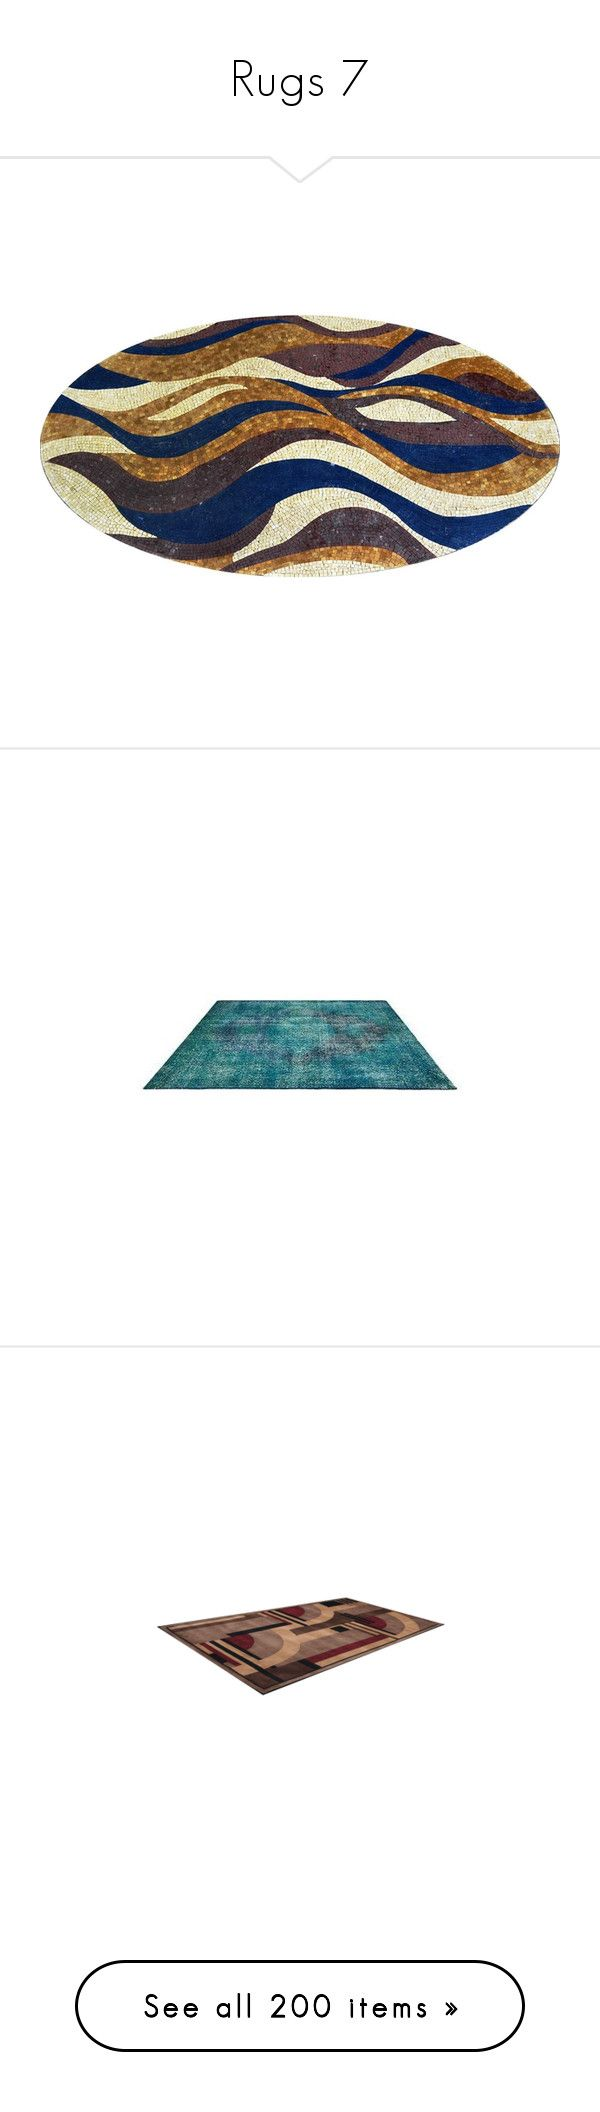 """""""Rugs 7"""" by mysfytdesigns ❤ liked on Polyvore featuring home, rugs, teal blue rug, teal green area rugs, teal rugs, teal blue area rugs, teal area rug, alfombra, tapete and tappeti"""